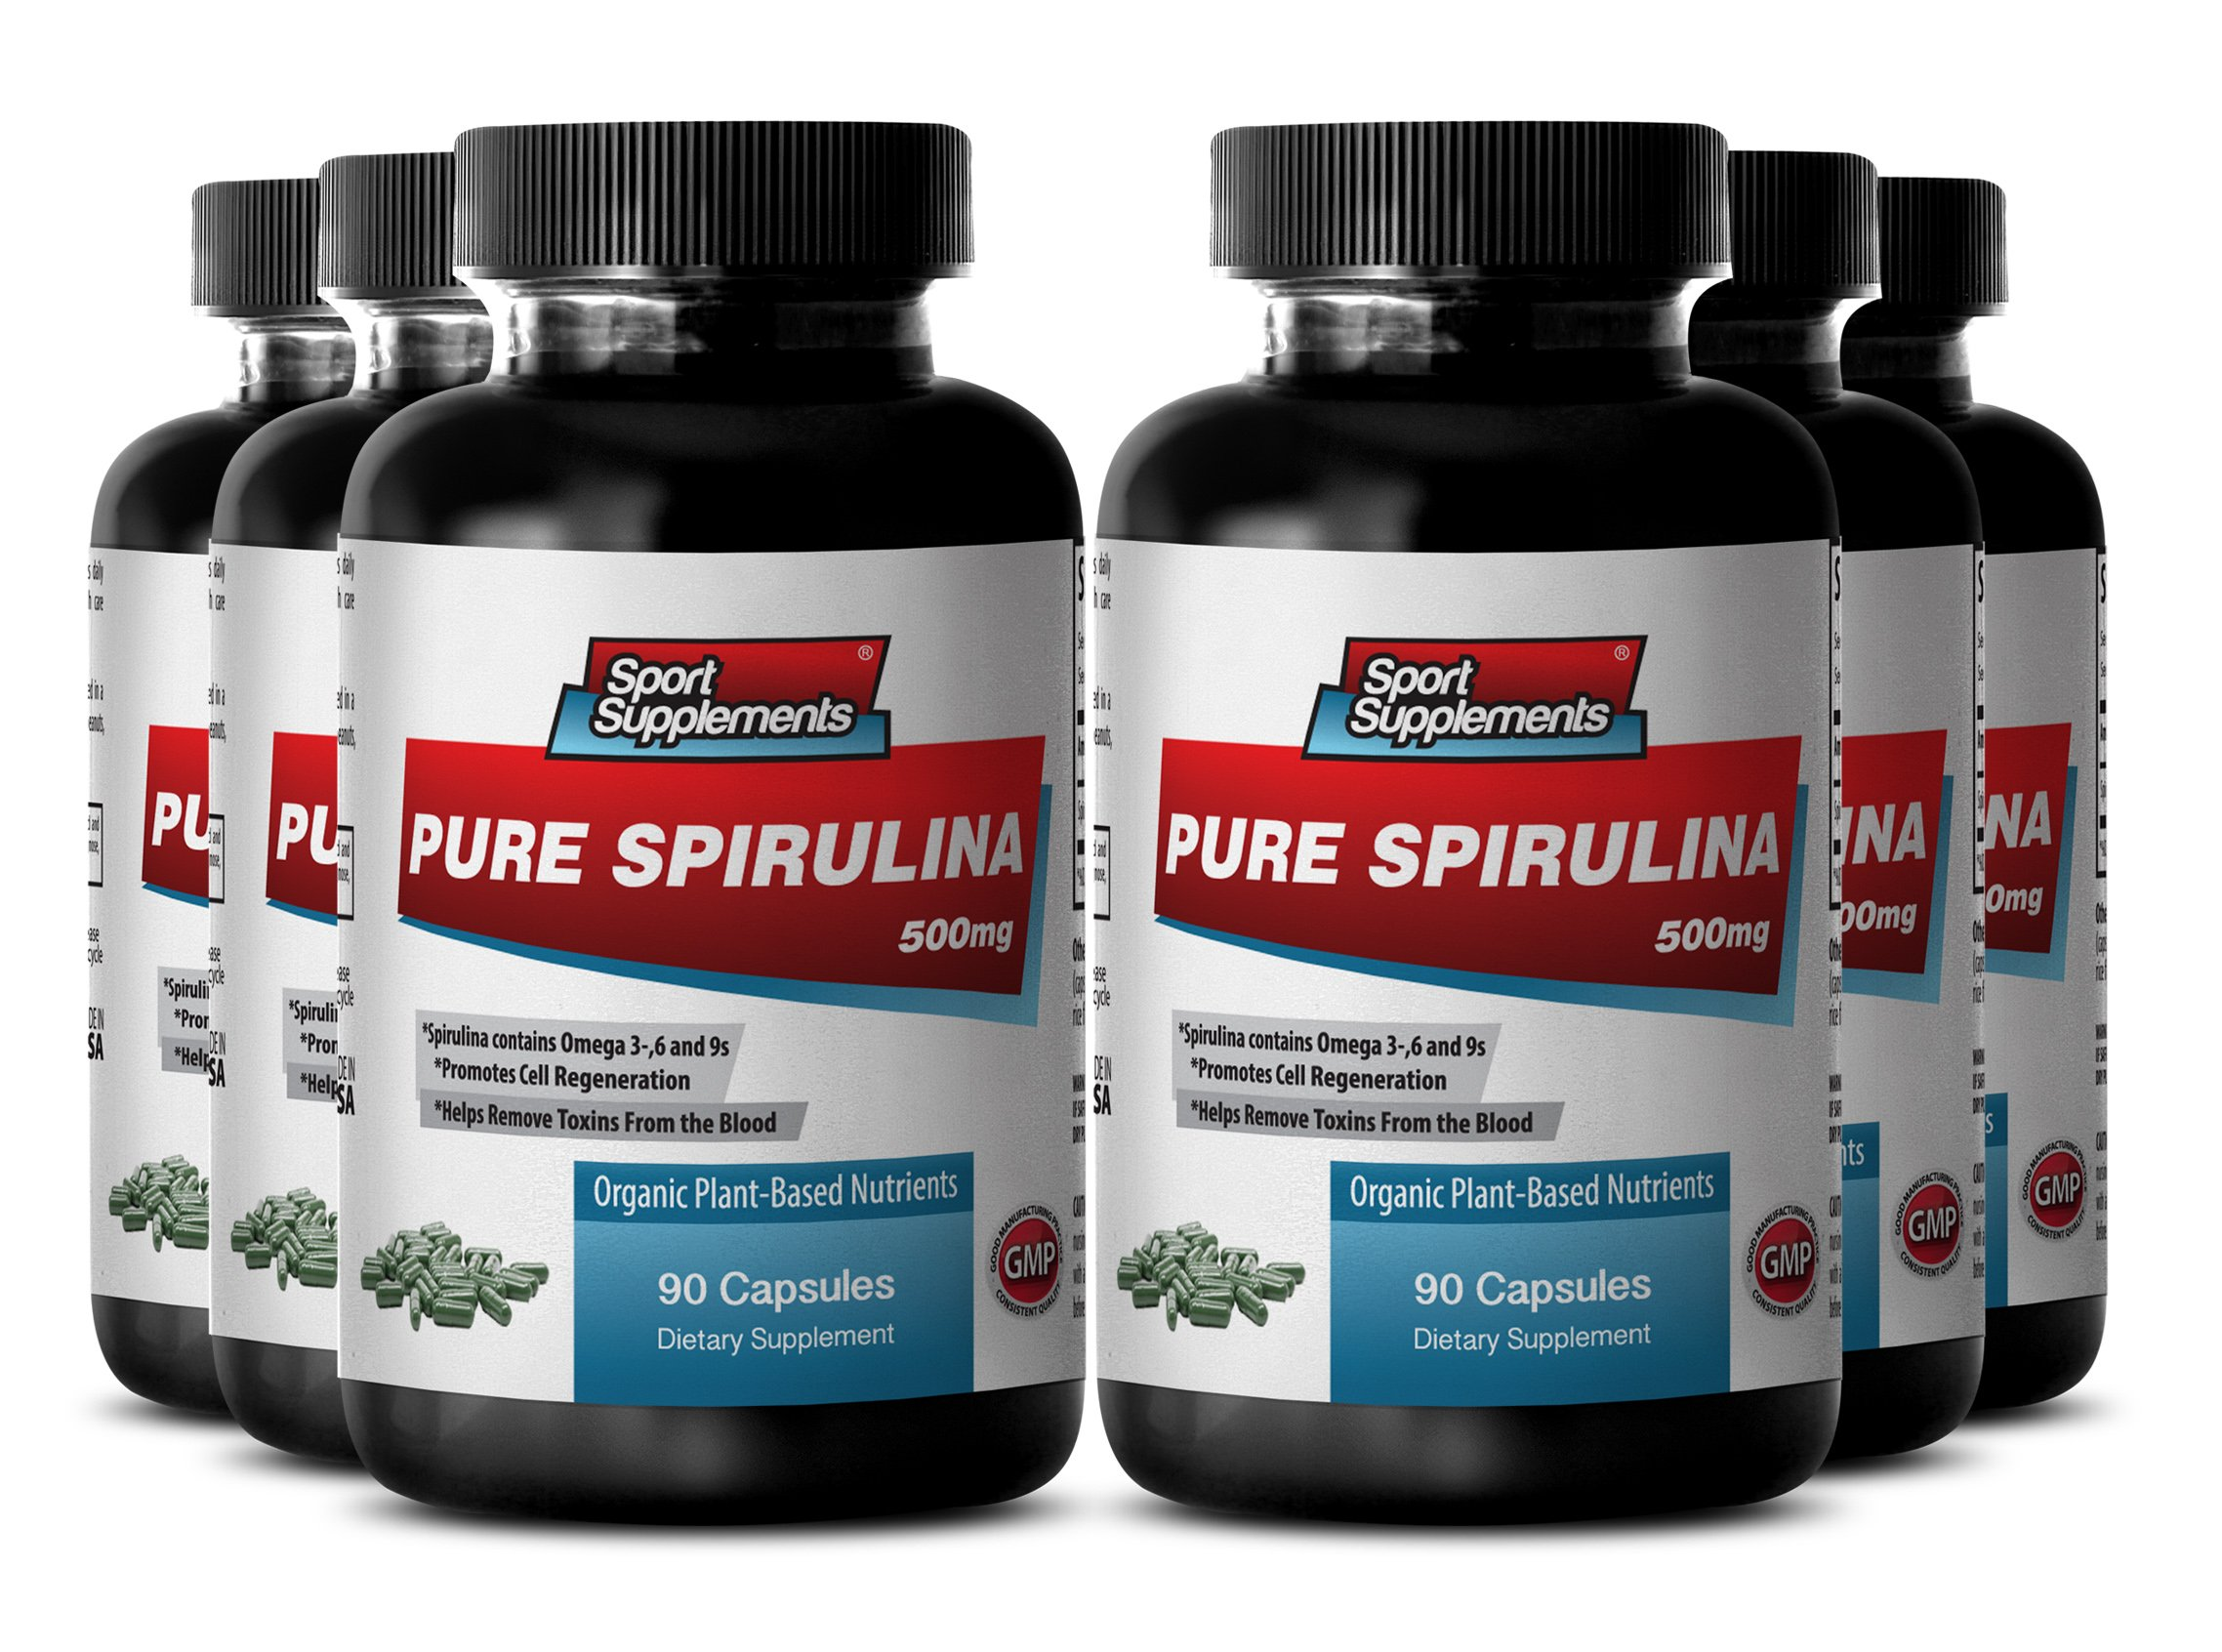 Chlorella Spirulina Tablets - Pure Spirulina 500mg - Boost Immune System and Weight Loss with Spirulina Herbal Supplement (6 Bottles 540 Capsules)